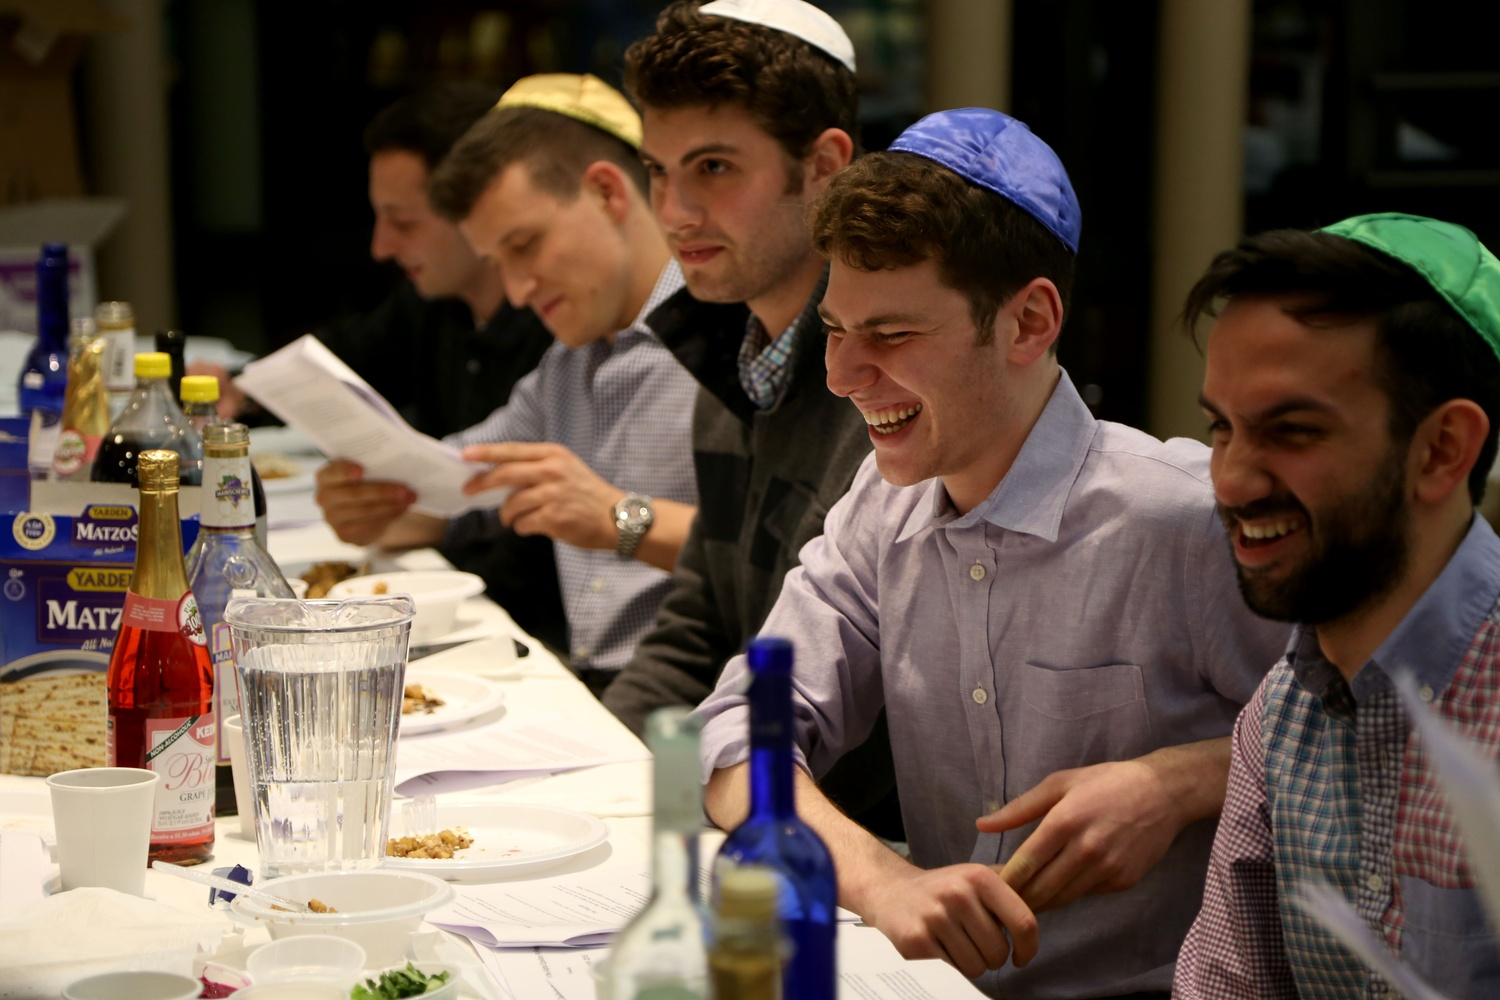 Alpha Epsilon Pi brothers celebrate Passover during a seder, a traditional Jewish ritual, in Hillel in 2015.